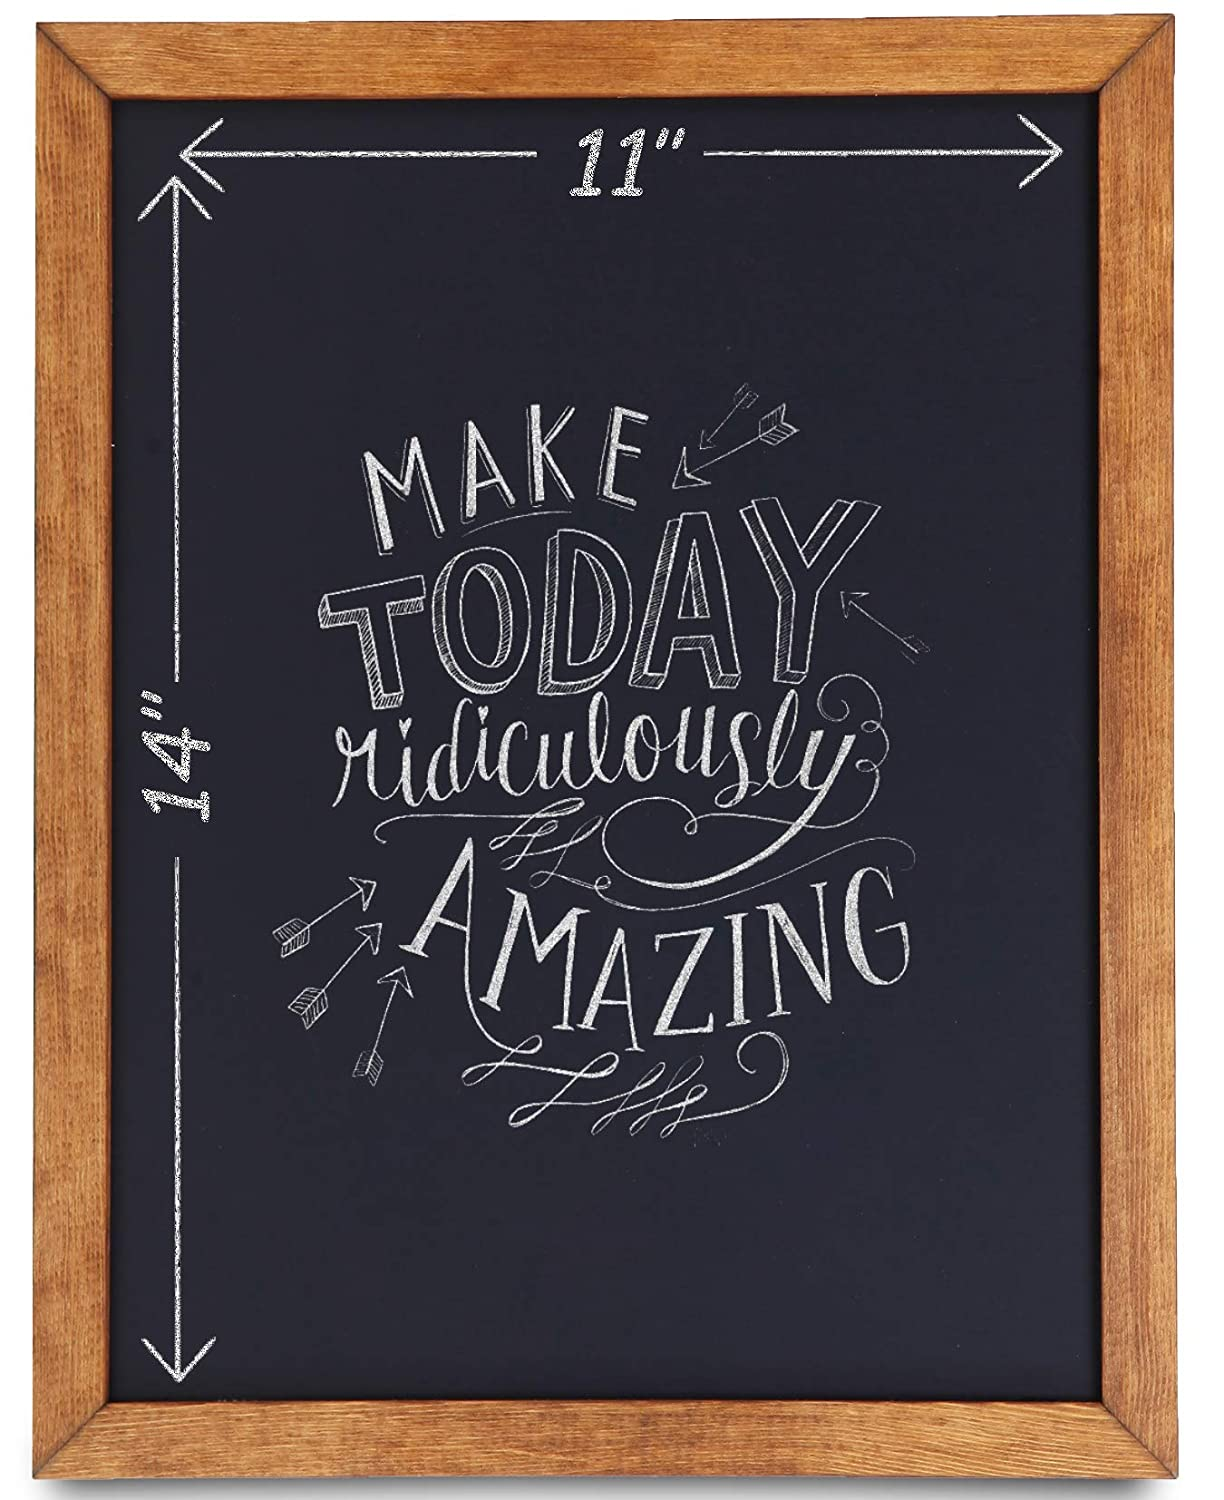 Chalkboard Sign [11 x 14] - Premium Rustic Chalk Board, Pine Wood Framed Chalkboard, Regular or Liquid Chalk Markers, Kitchen Countertop Sign, Decorations for Weddings Birthdays Receptions